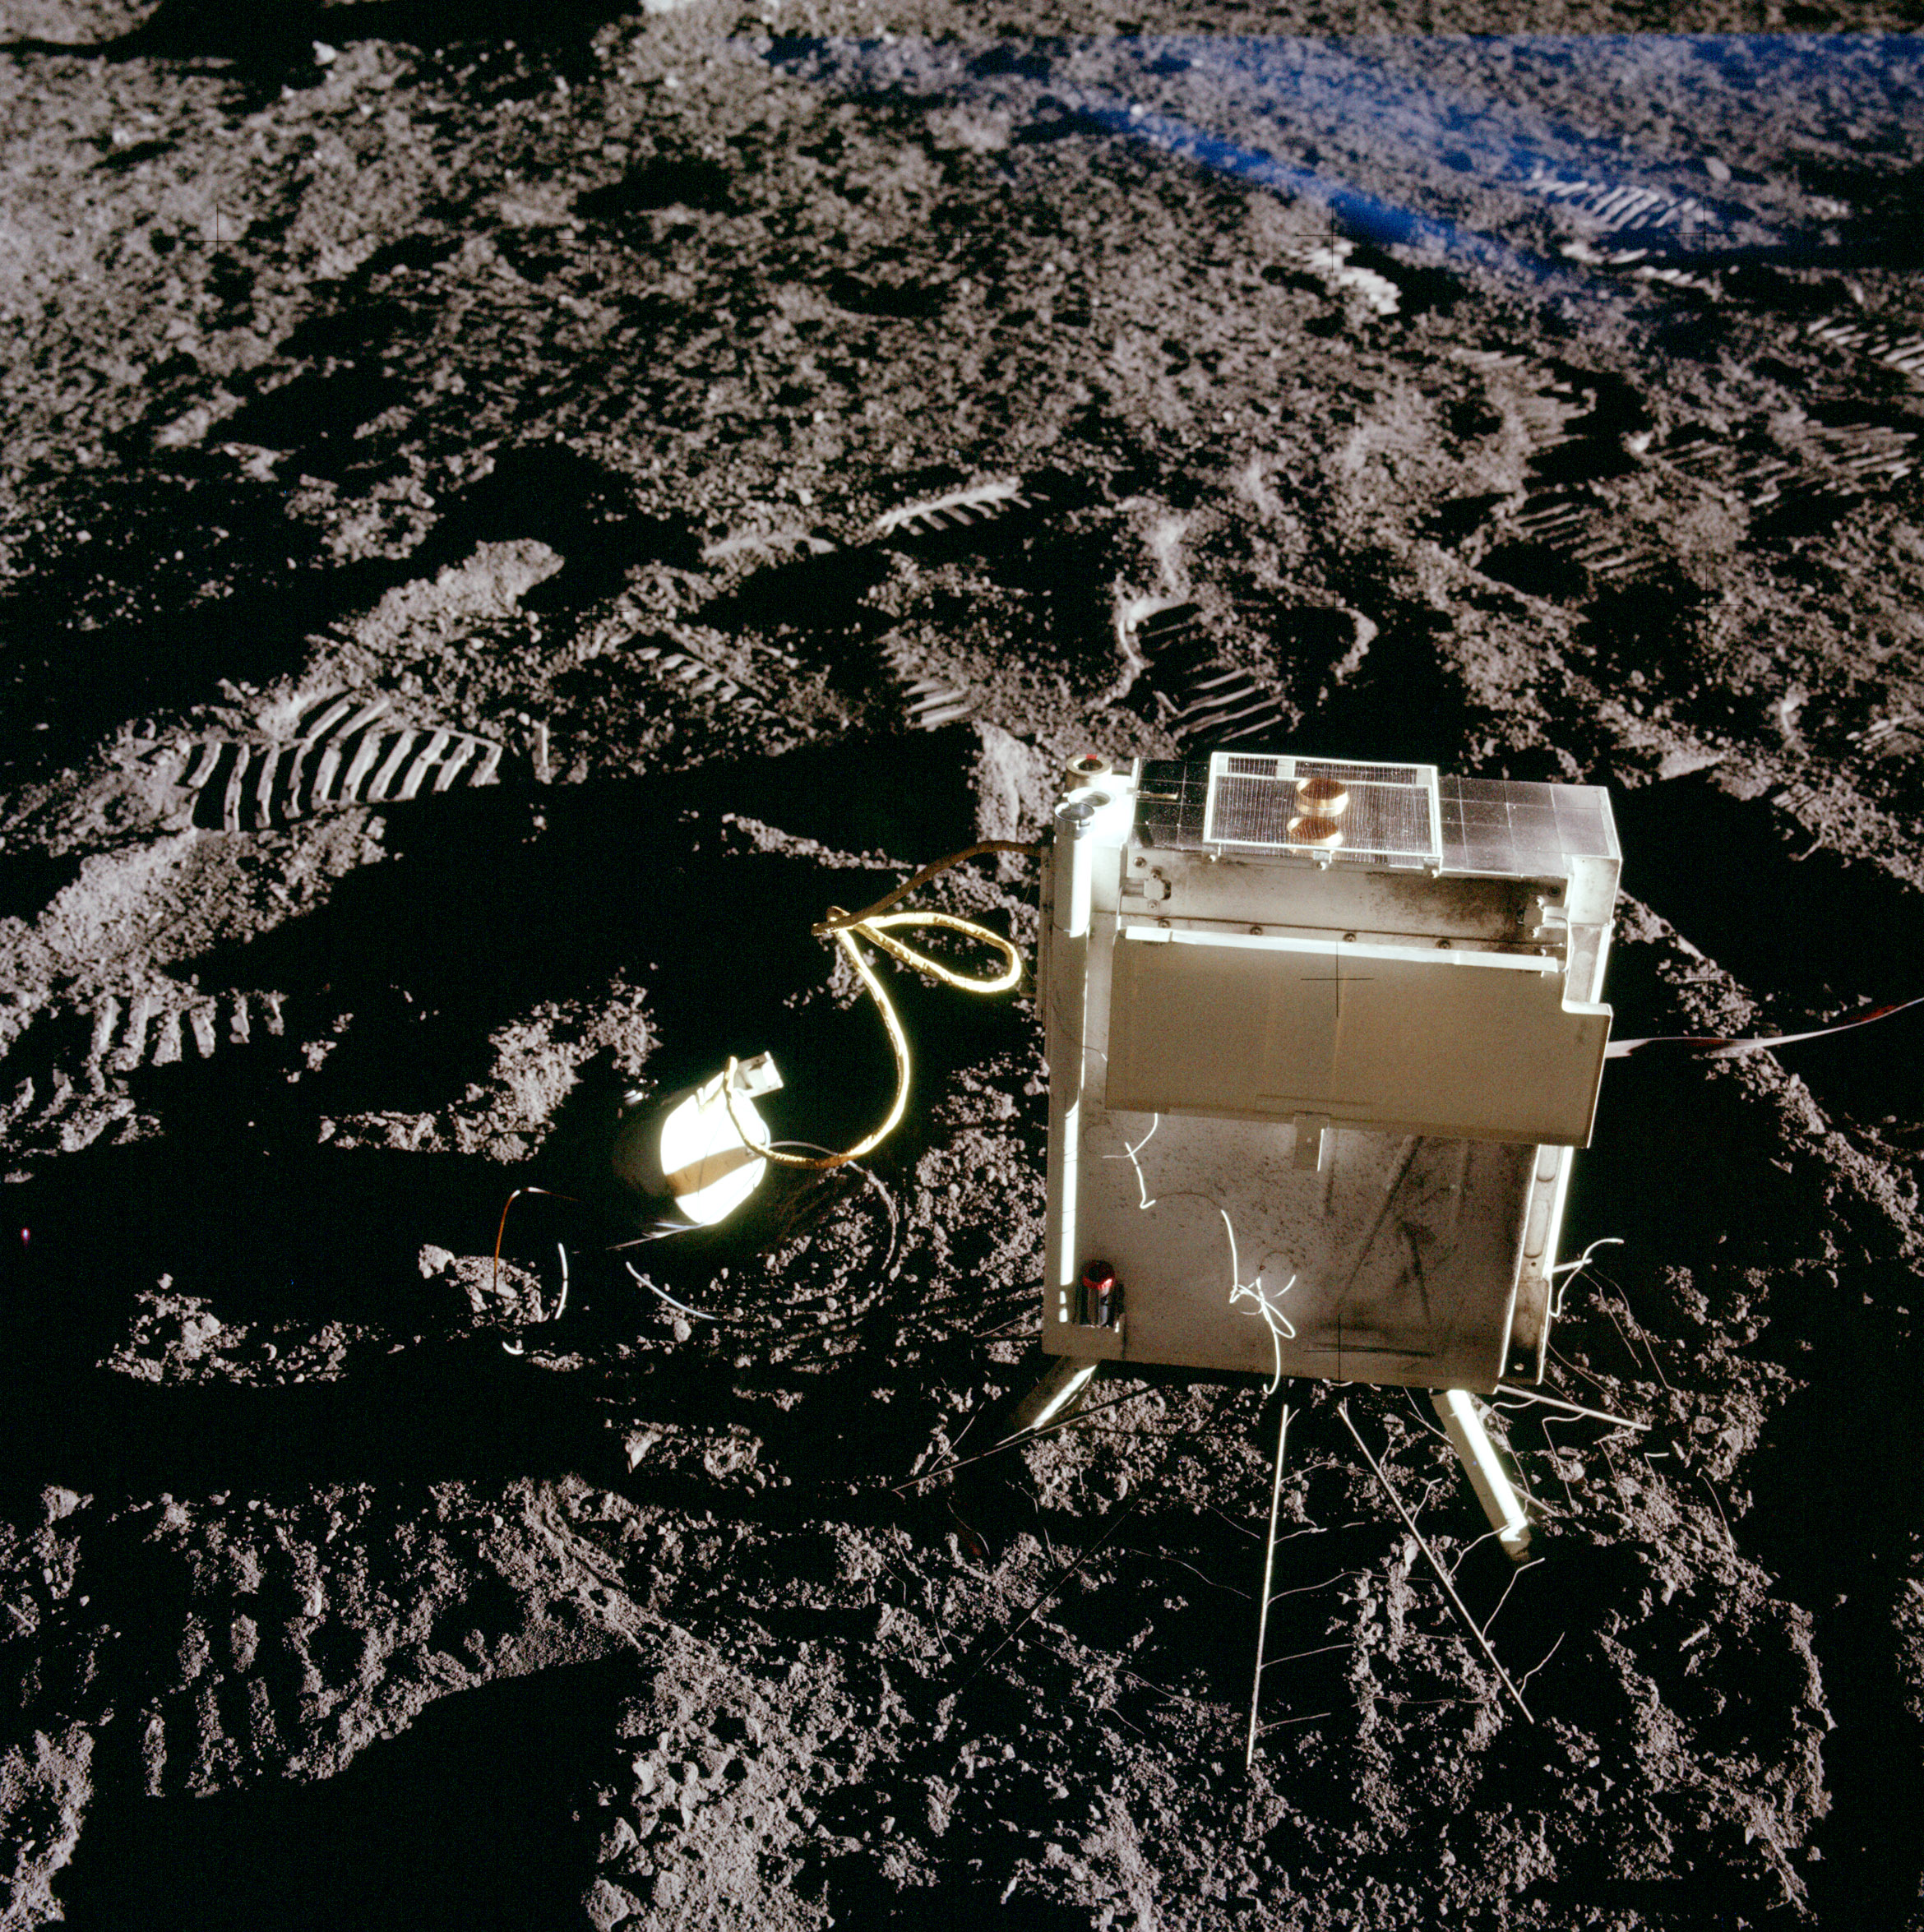 _images/apollo12-SIDE_CCIG.jpg